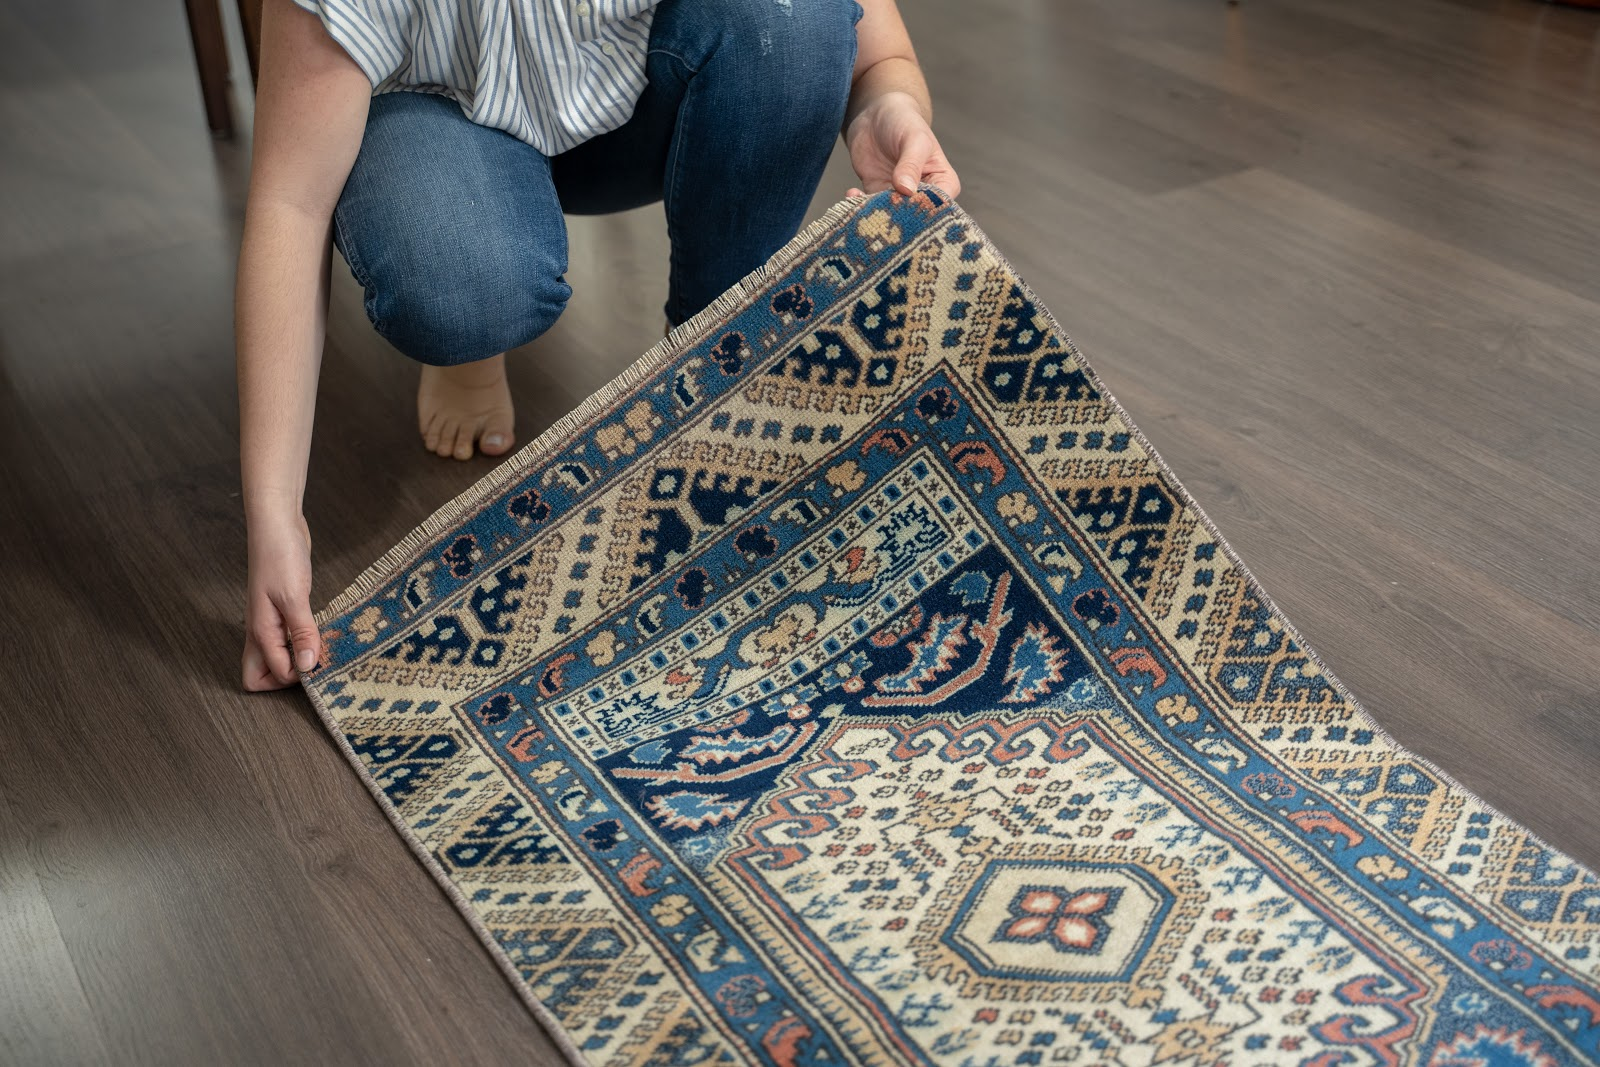 Image of a vintage rug being shown by a person on a wooden floor.